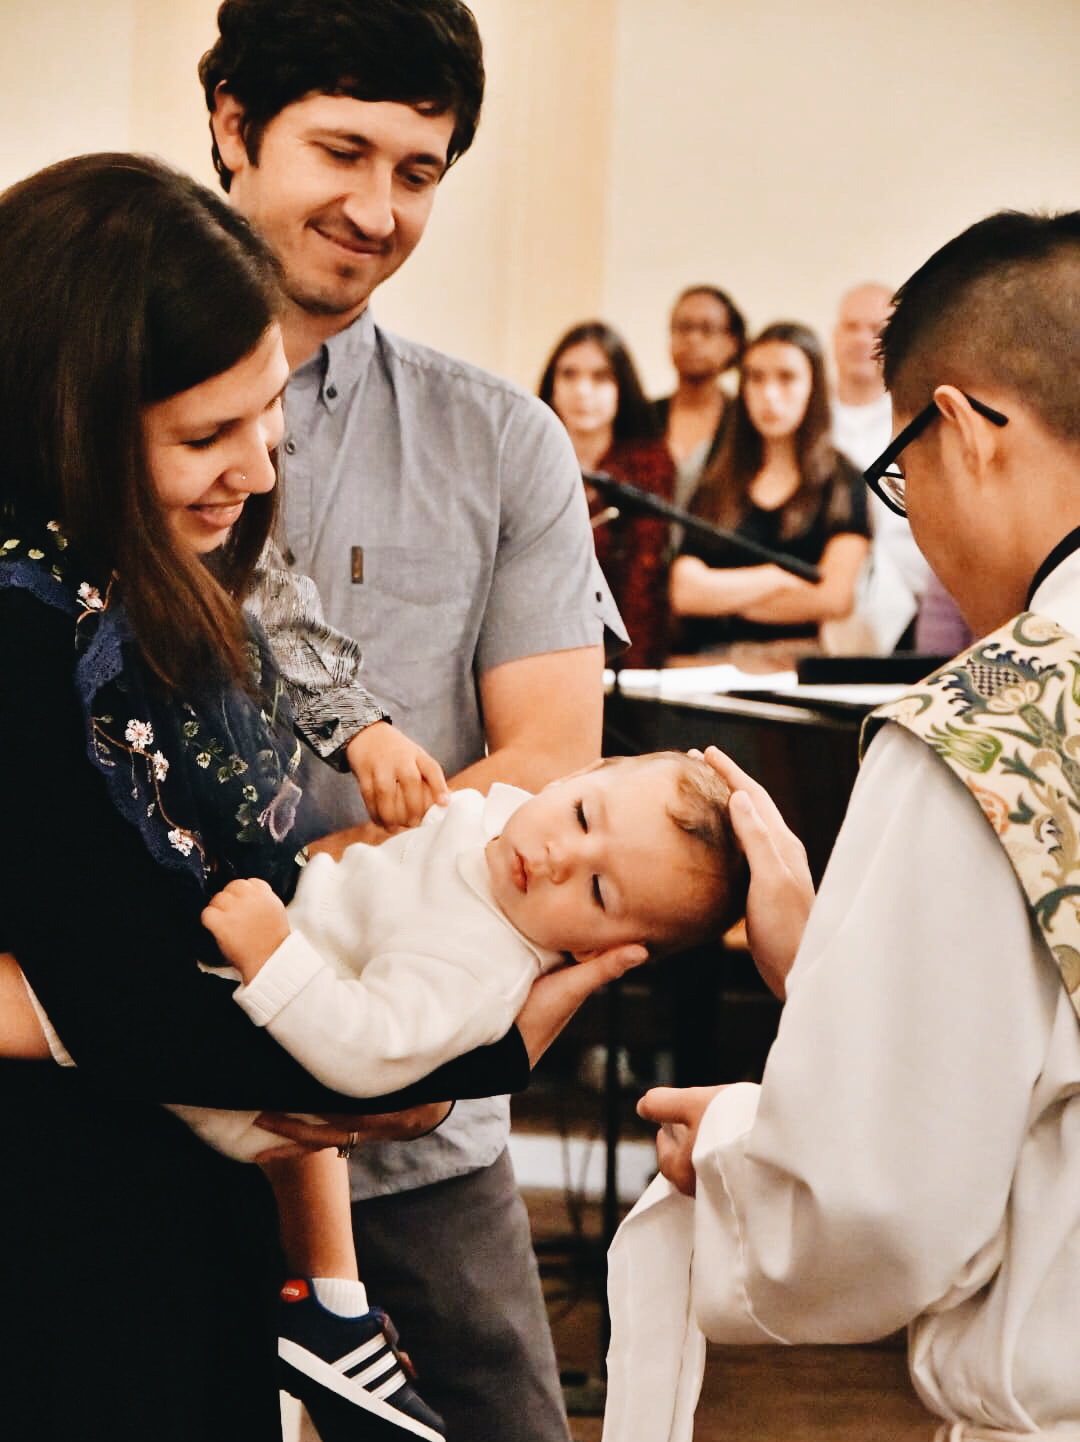 theo baptism 6.png